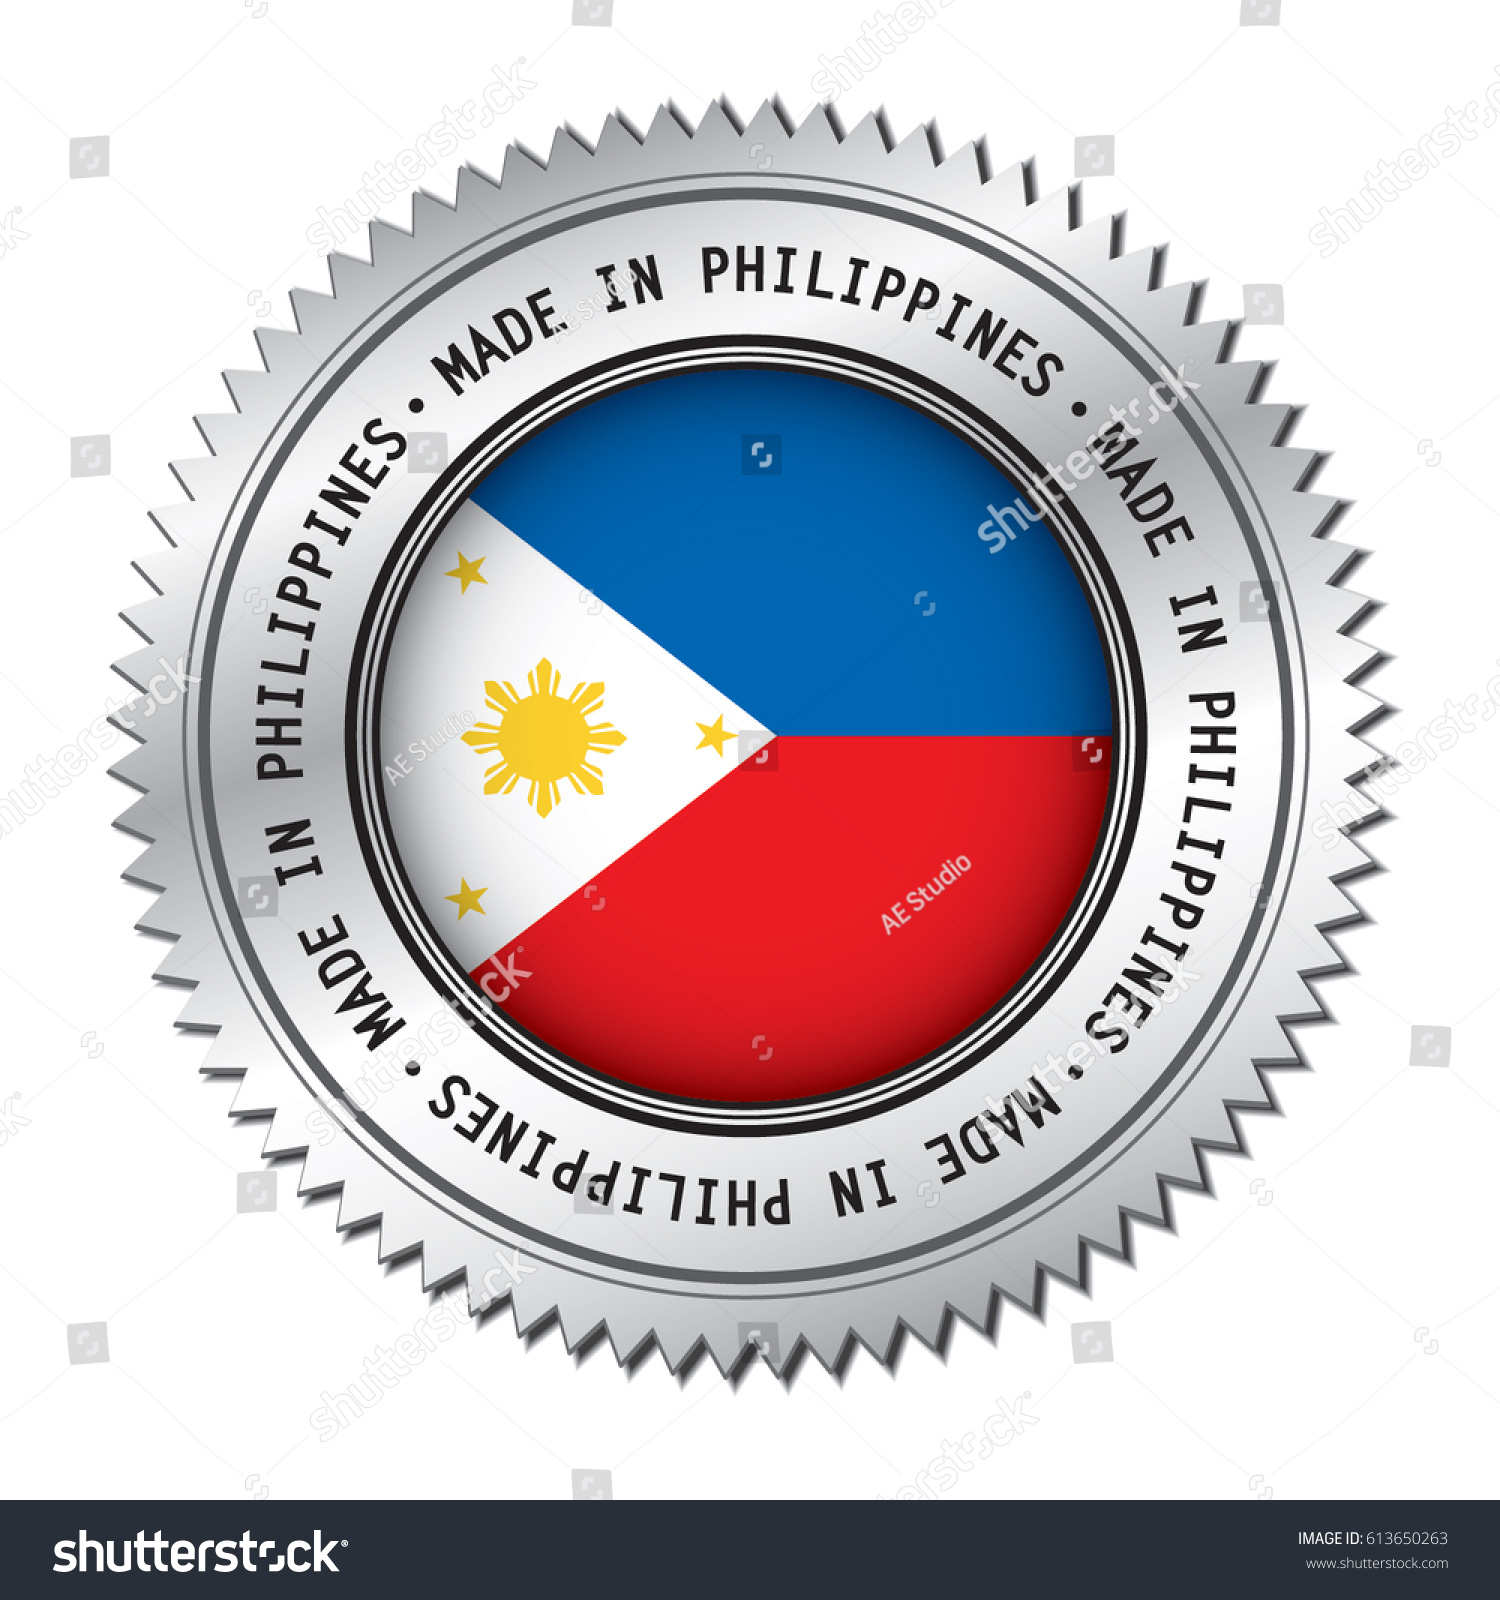 Made philippines silver badge flag symbol stock vector 613650263 made in philippines silver badge with the flag symbol of philippine flag in the center biocorpaavc Choice Image